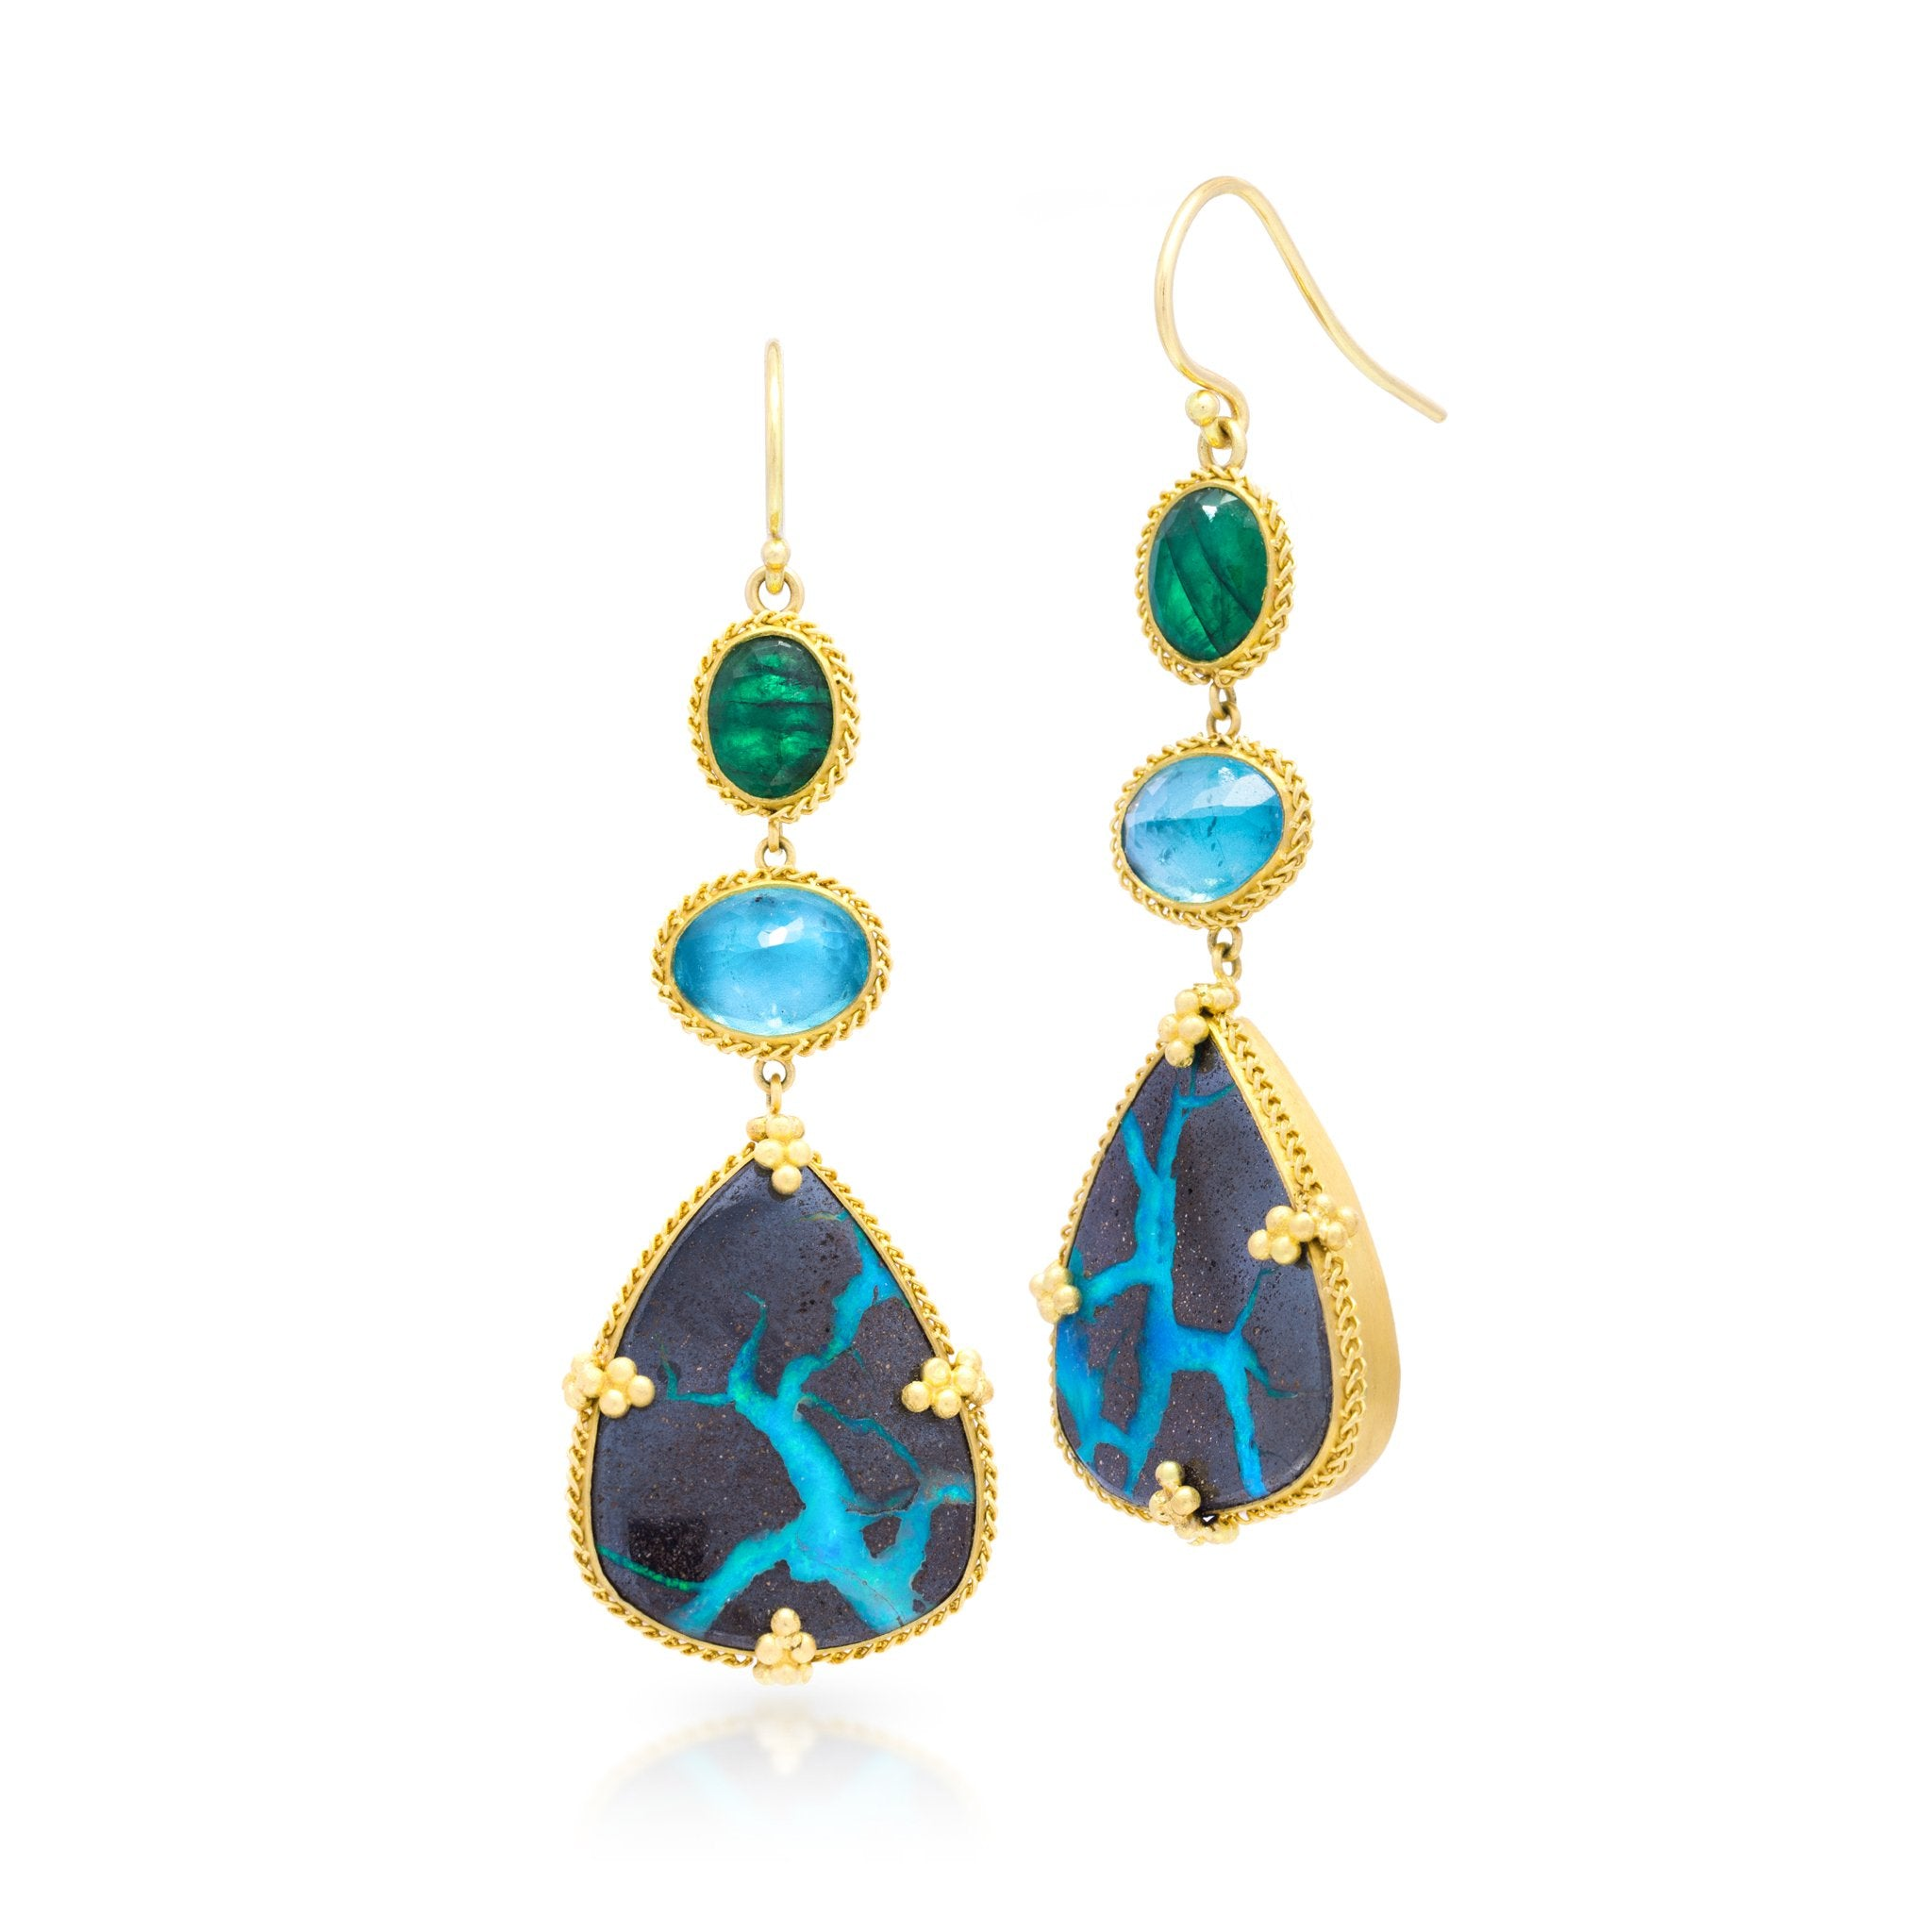 Amali-Blue Lightning Earrings